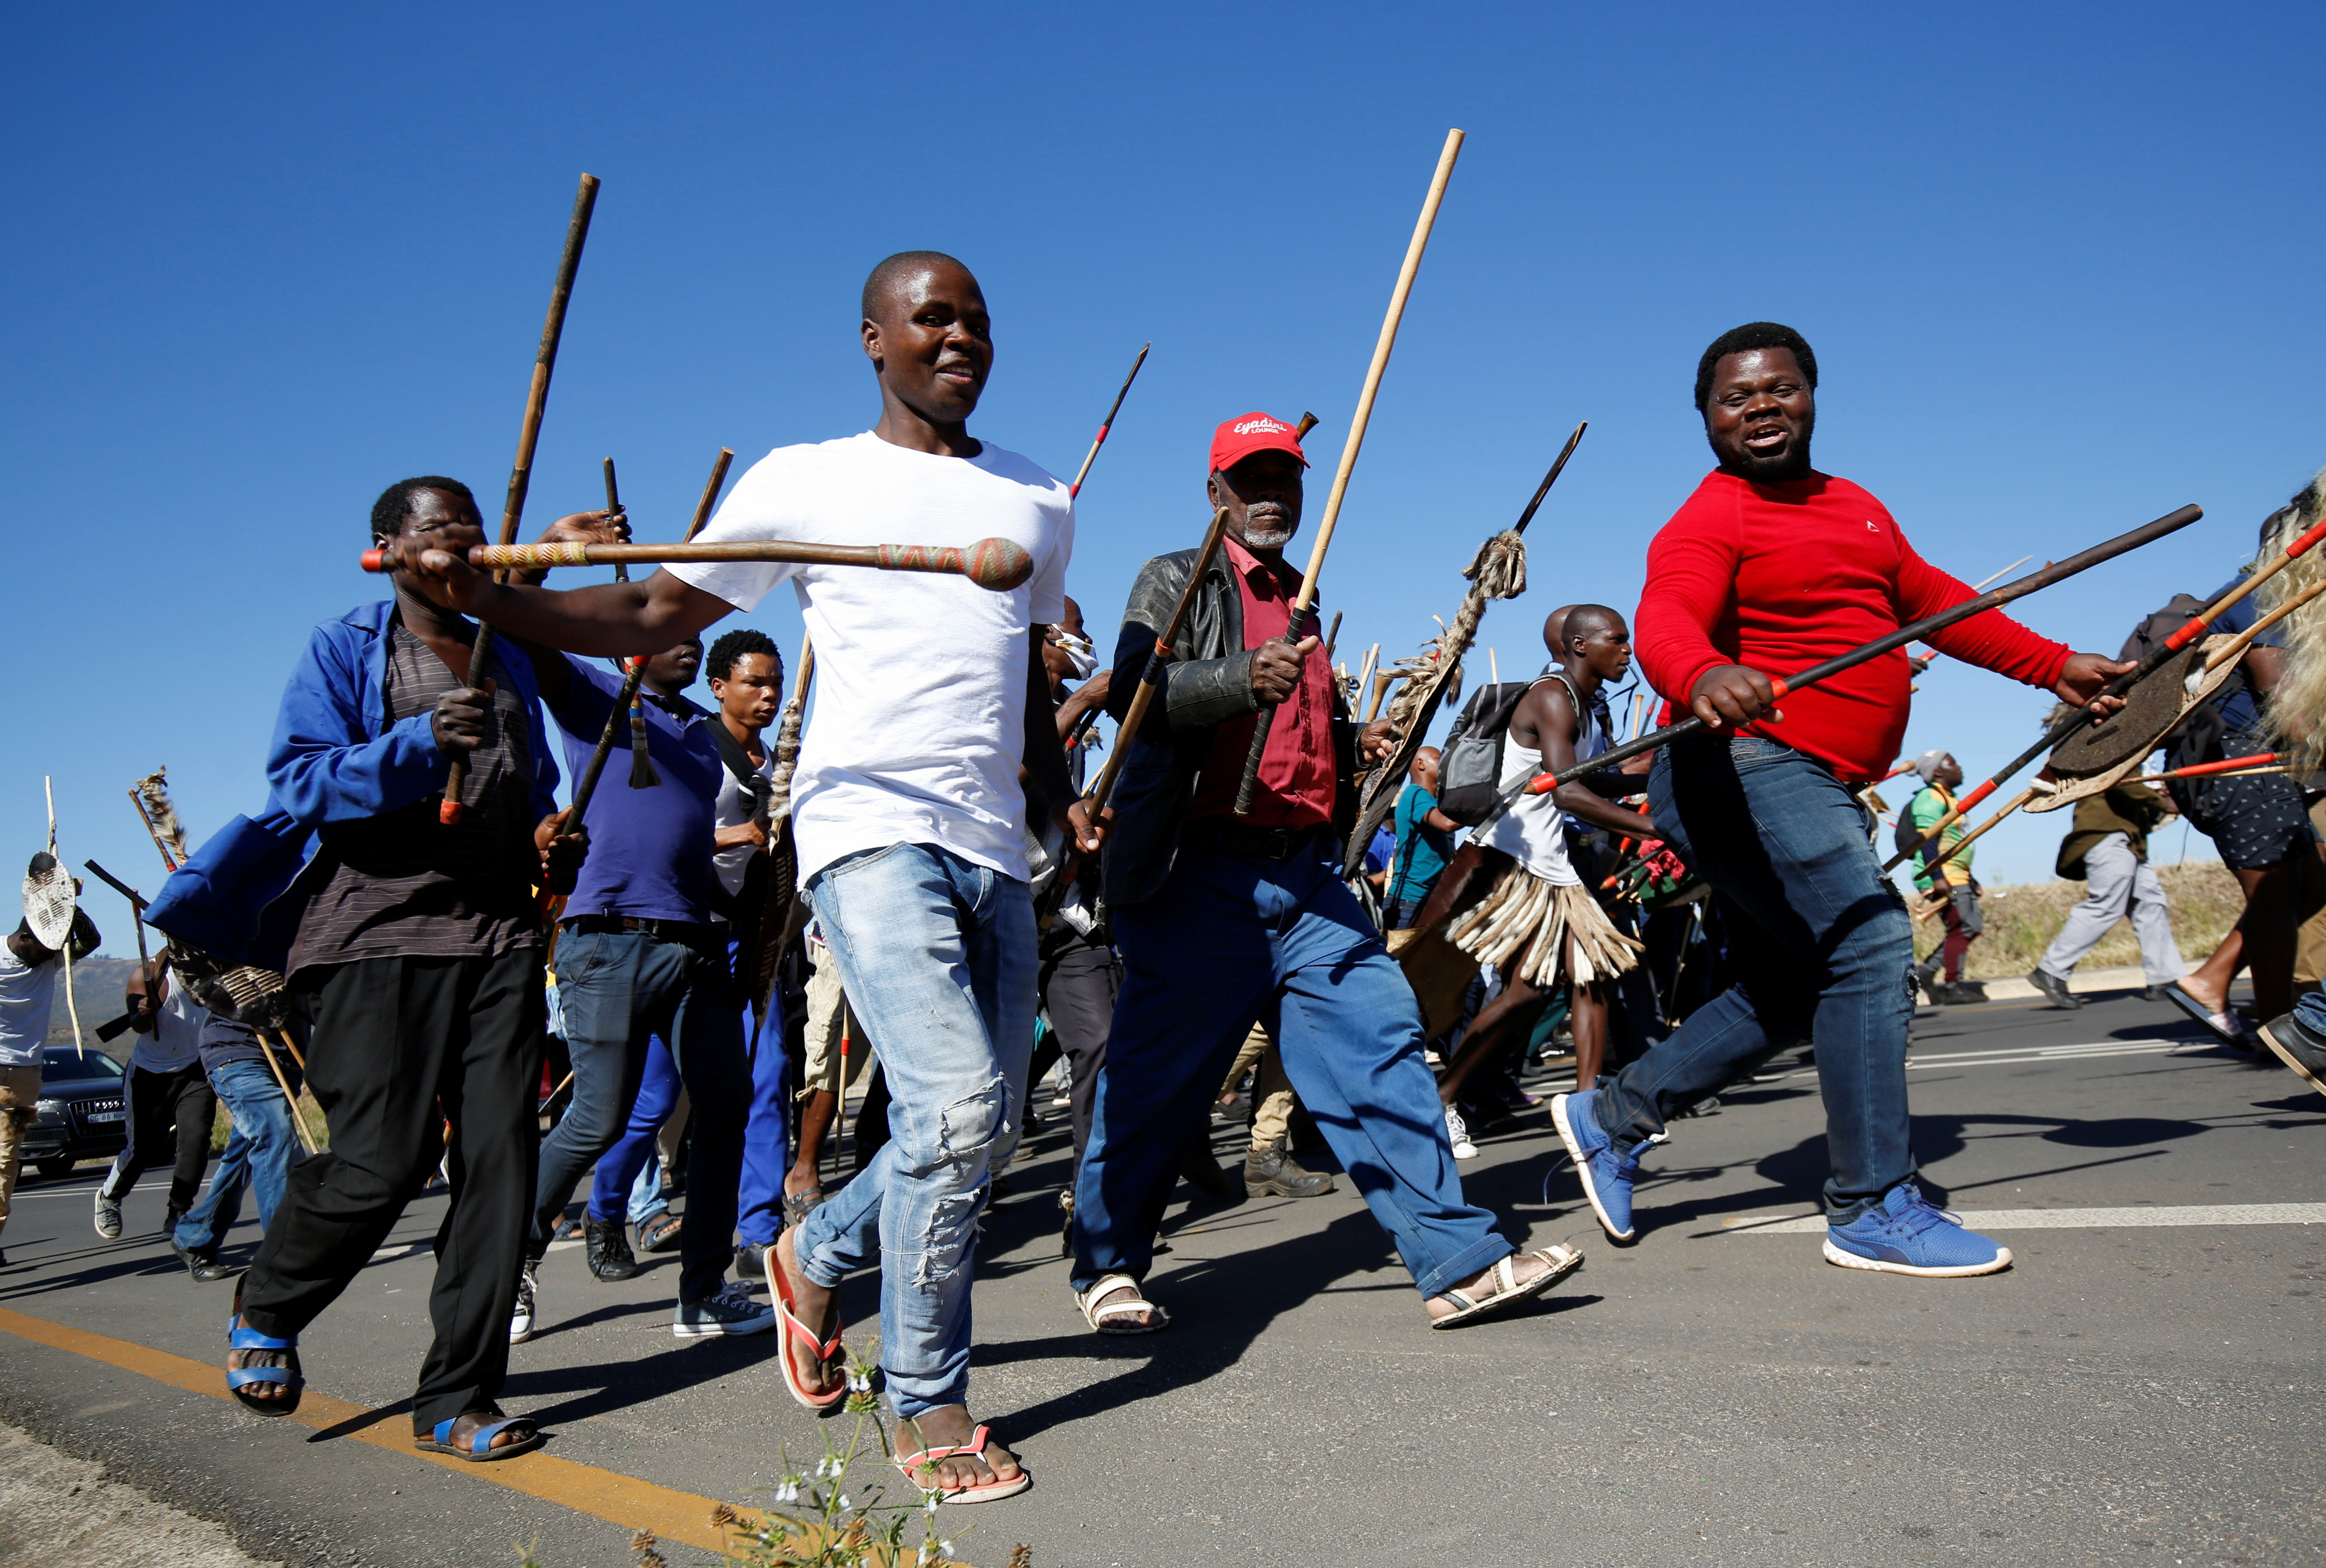 Supporters of former South African President Jacob Zuma, who was sentenced to a 15-month imprisonment by the Constitutional Court, walk to his home in Nkandla, South Africa, July 3, 2021. REUTERS/Rogan Ward